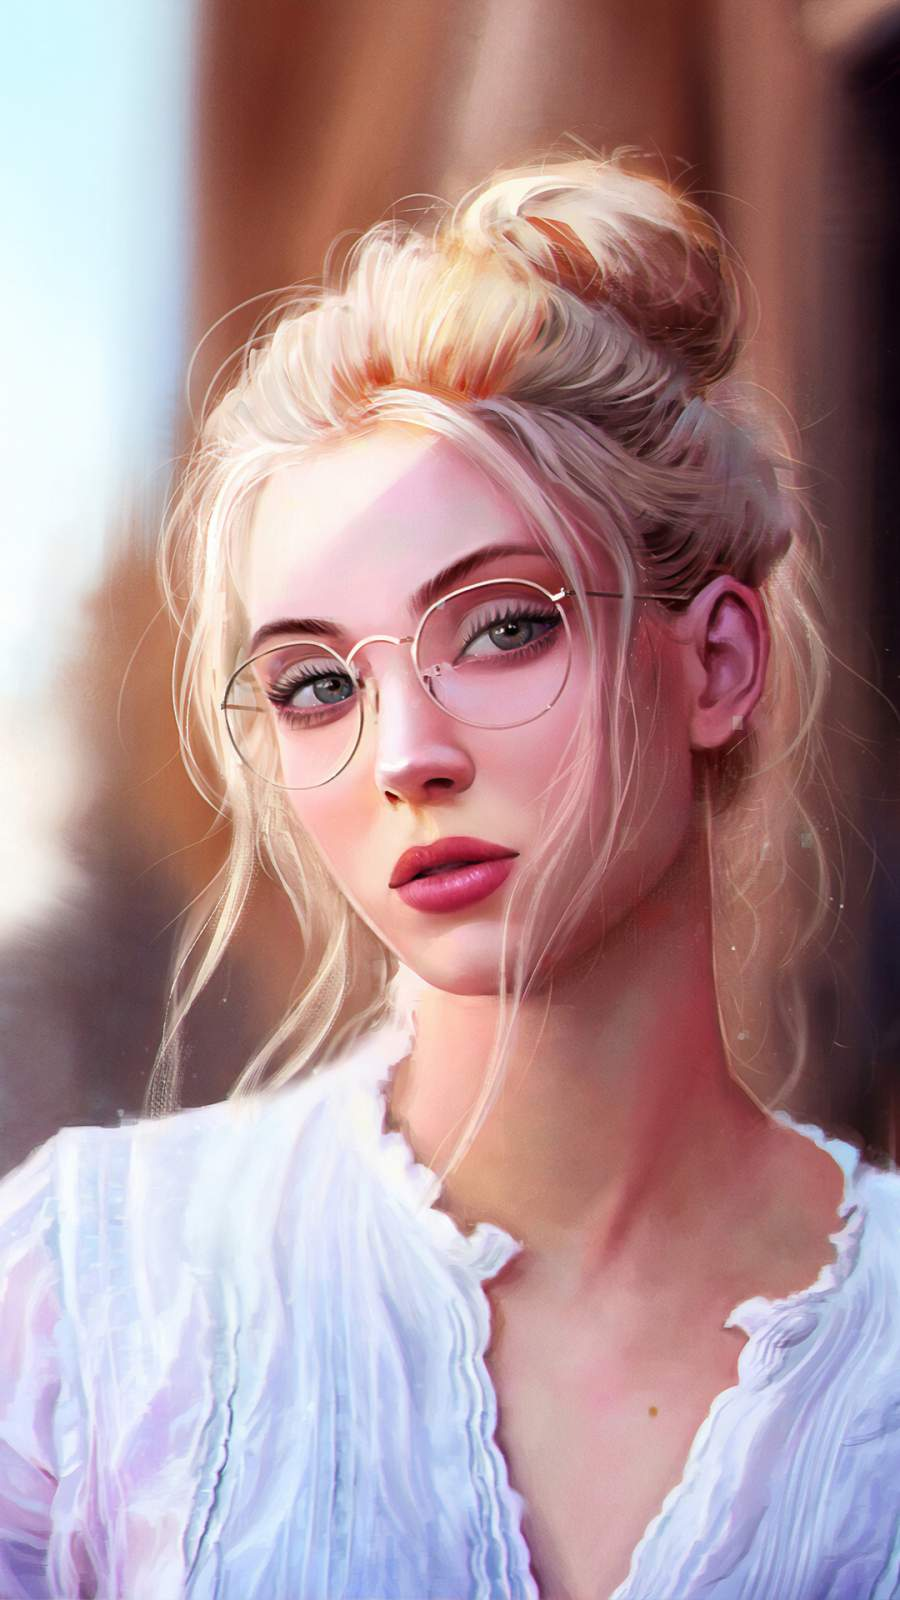 Girl with Glasses Artistic Portrait iPhone Wallpaper